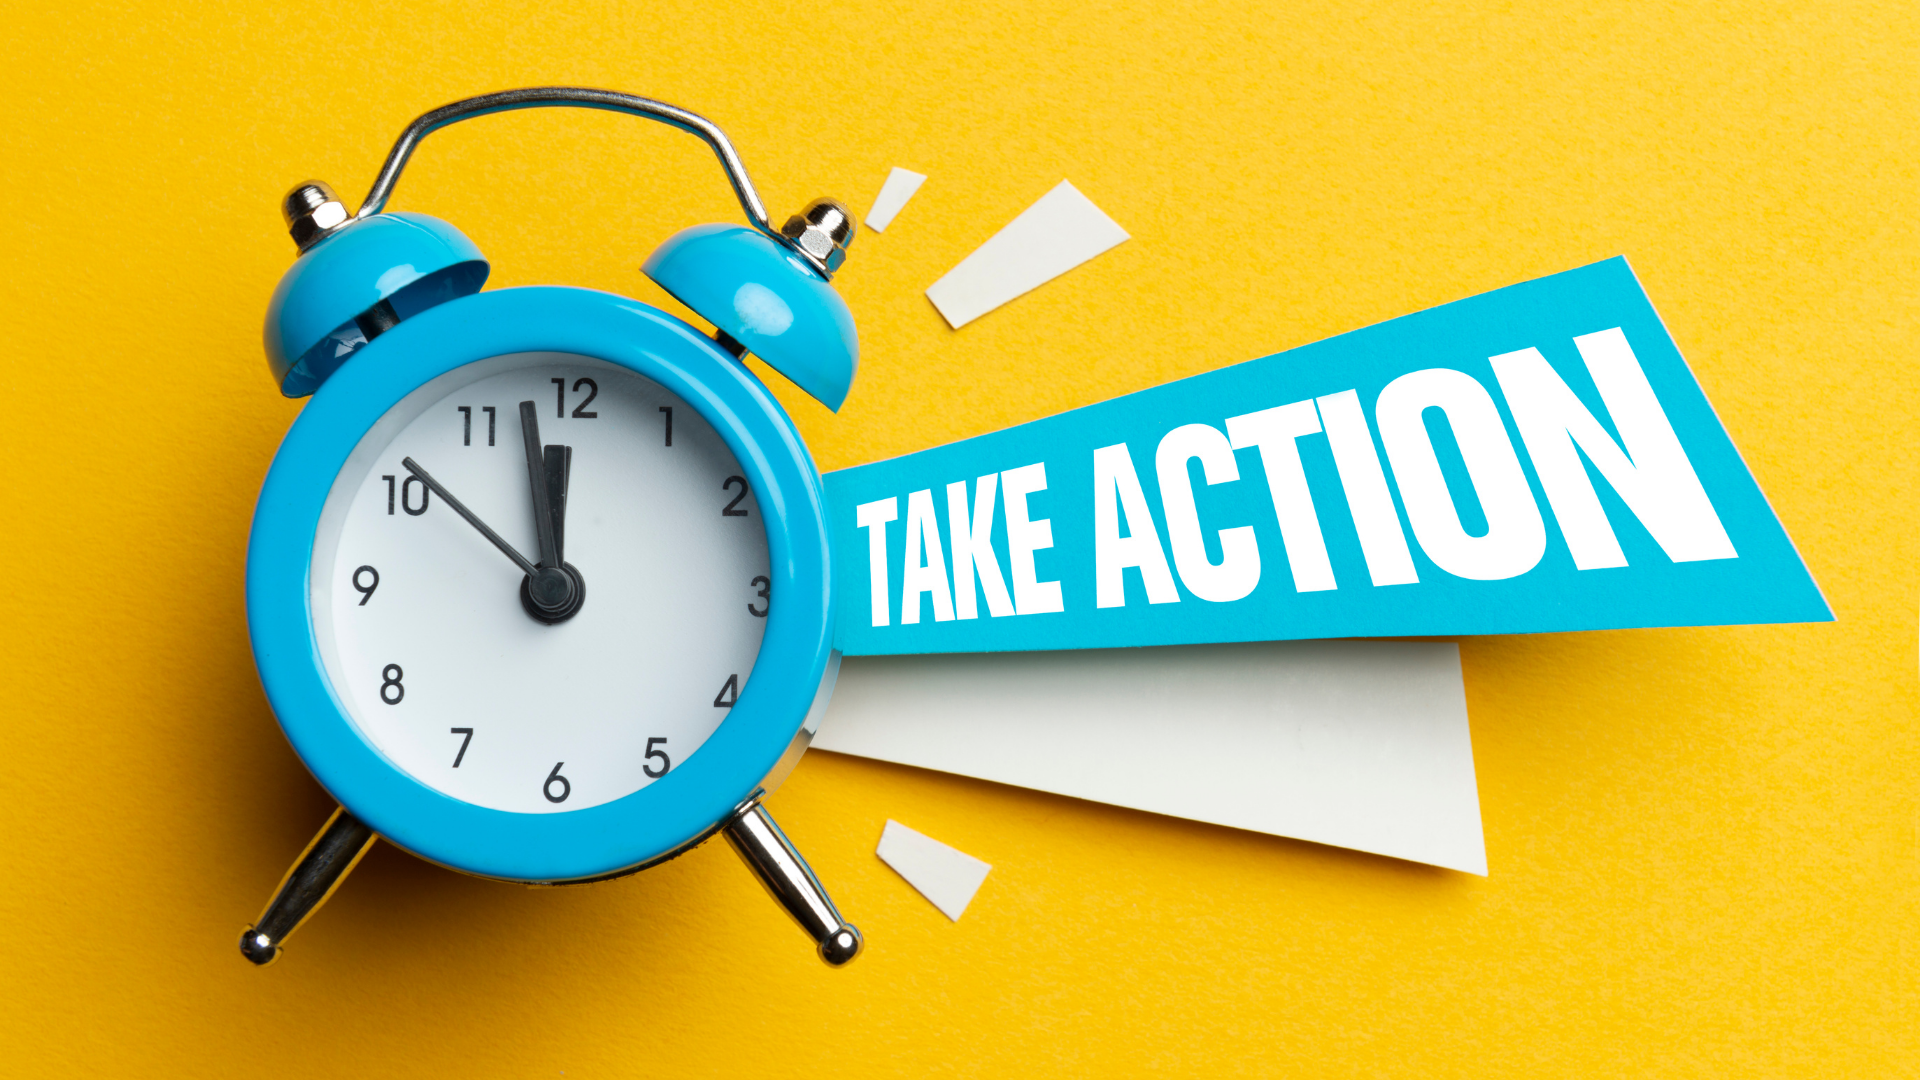 take-action-with-alarm-clock